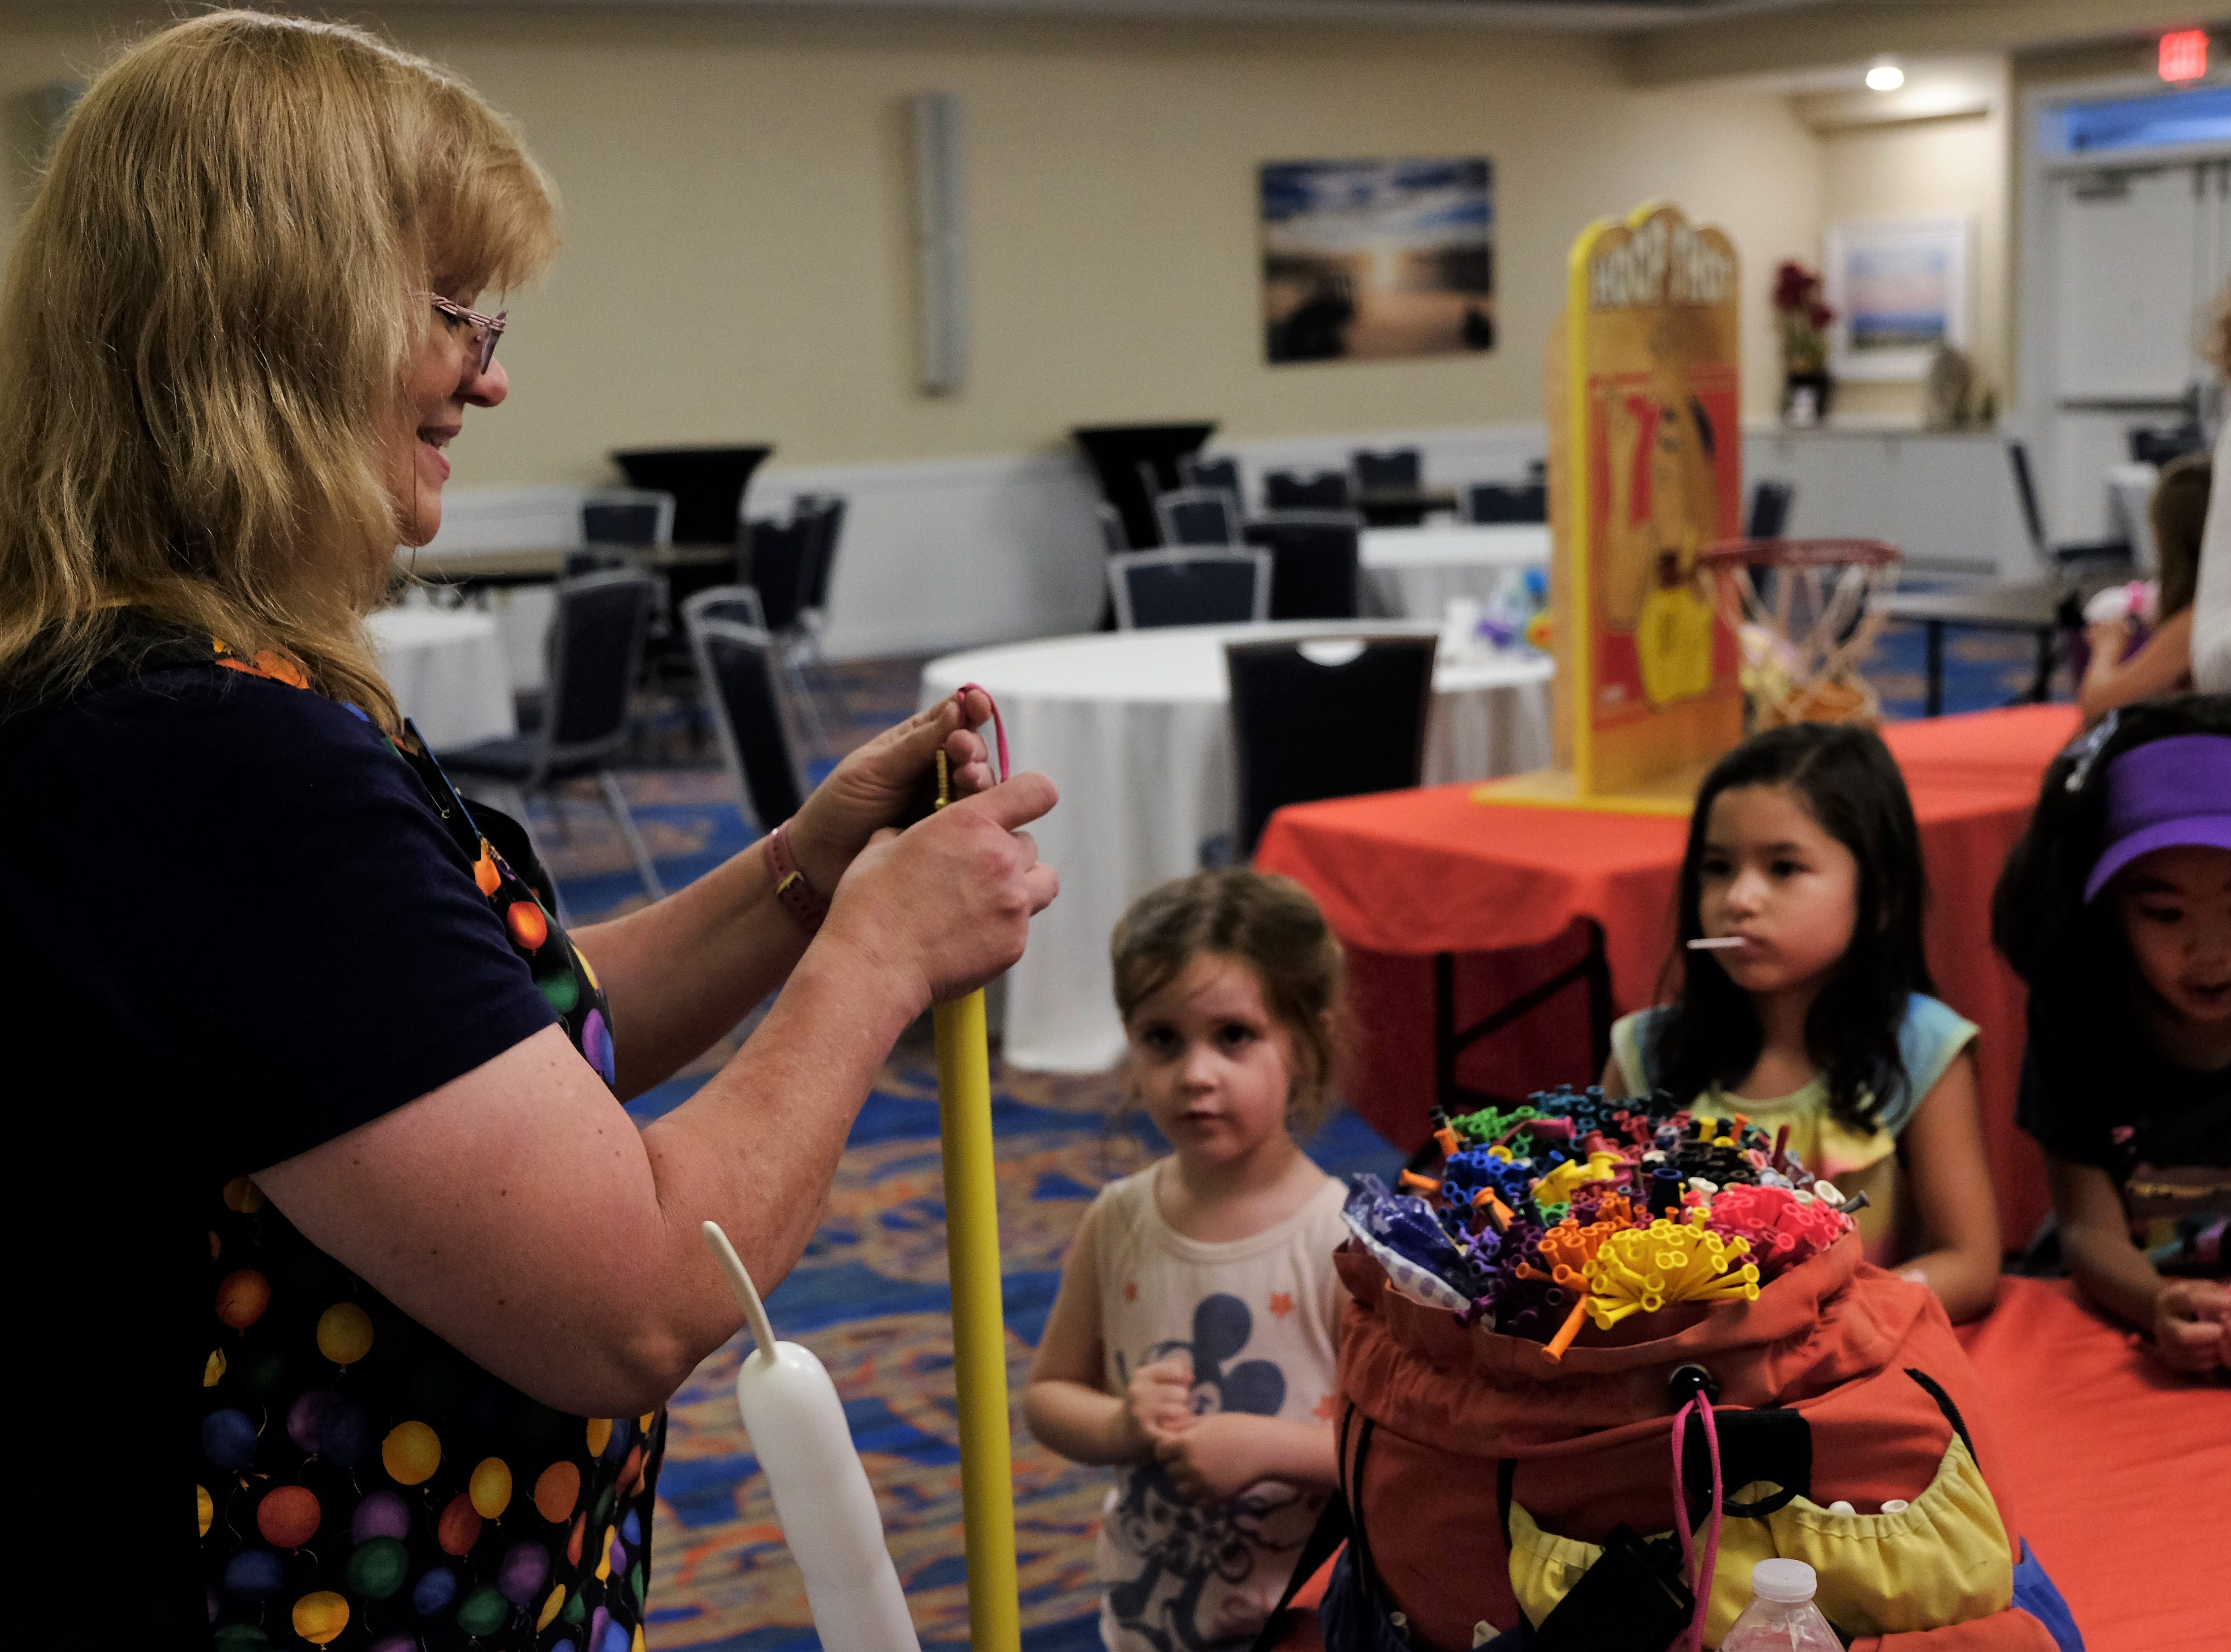 Renate McIntosh had a long line on Aug. 15 at Bethany Beach Ocean Suites, as kids waited for their imaginations to come to life in balloon form.